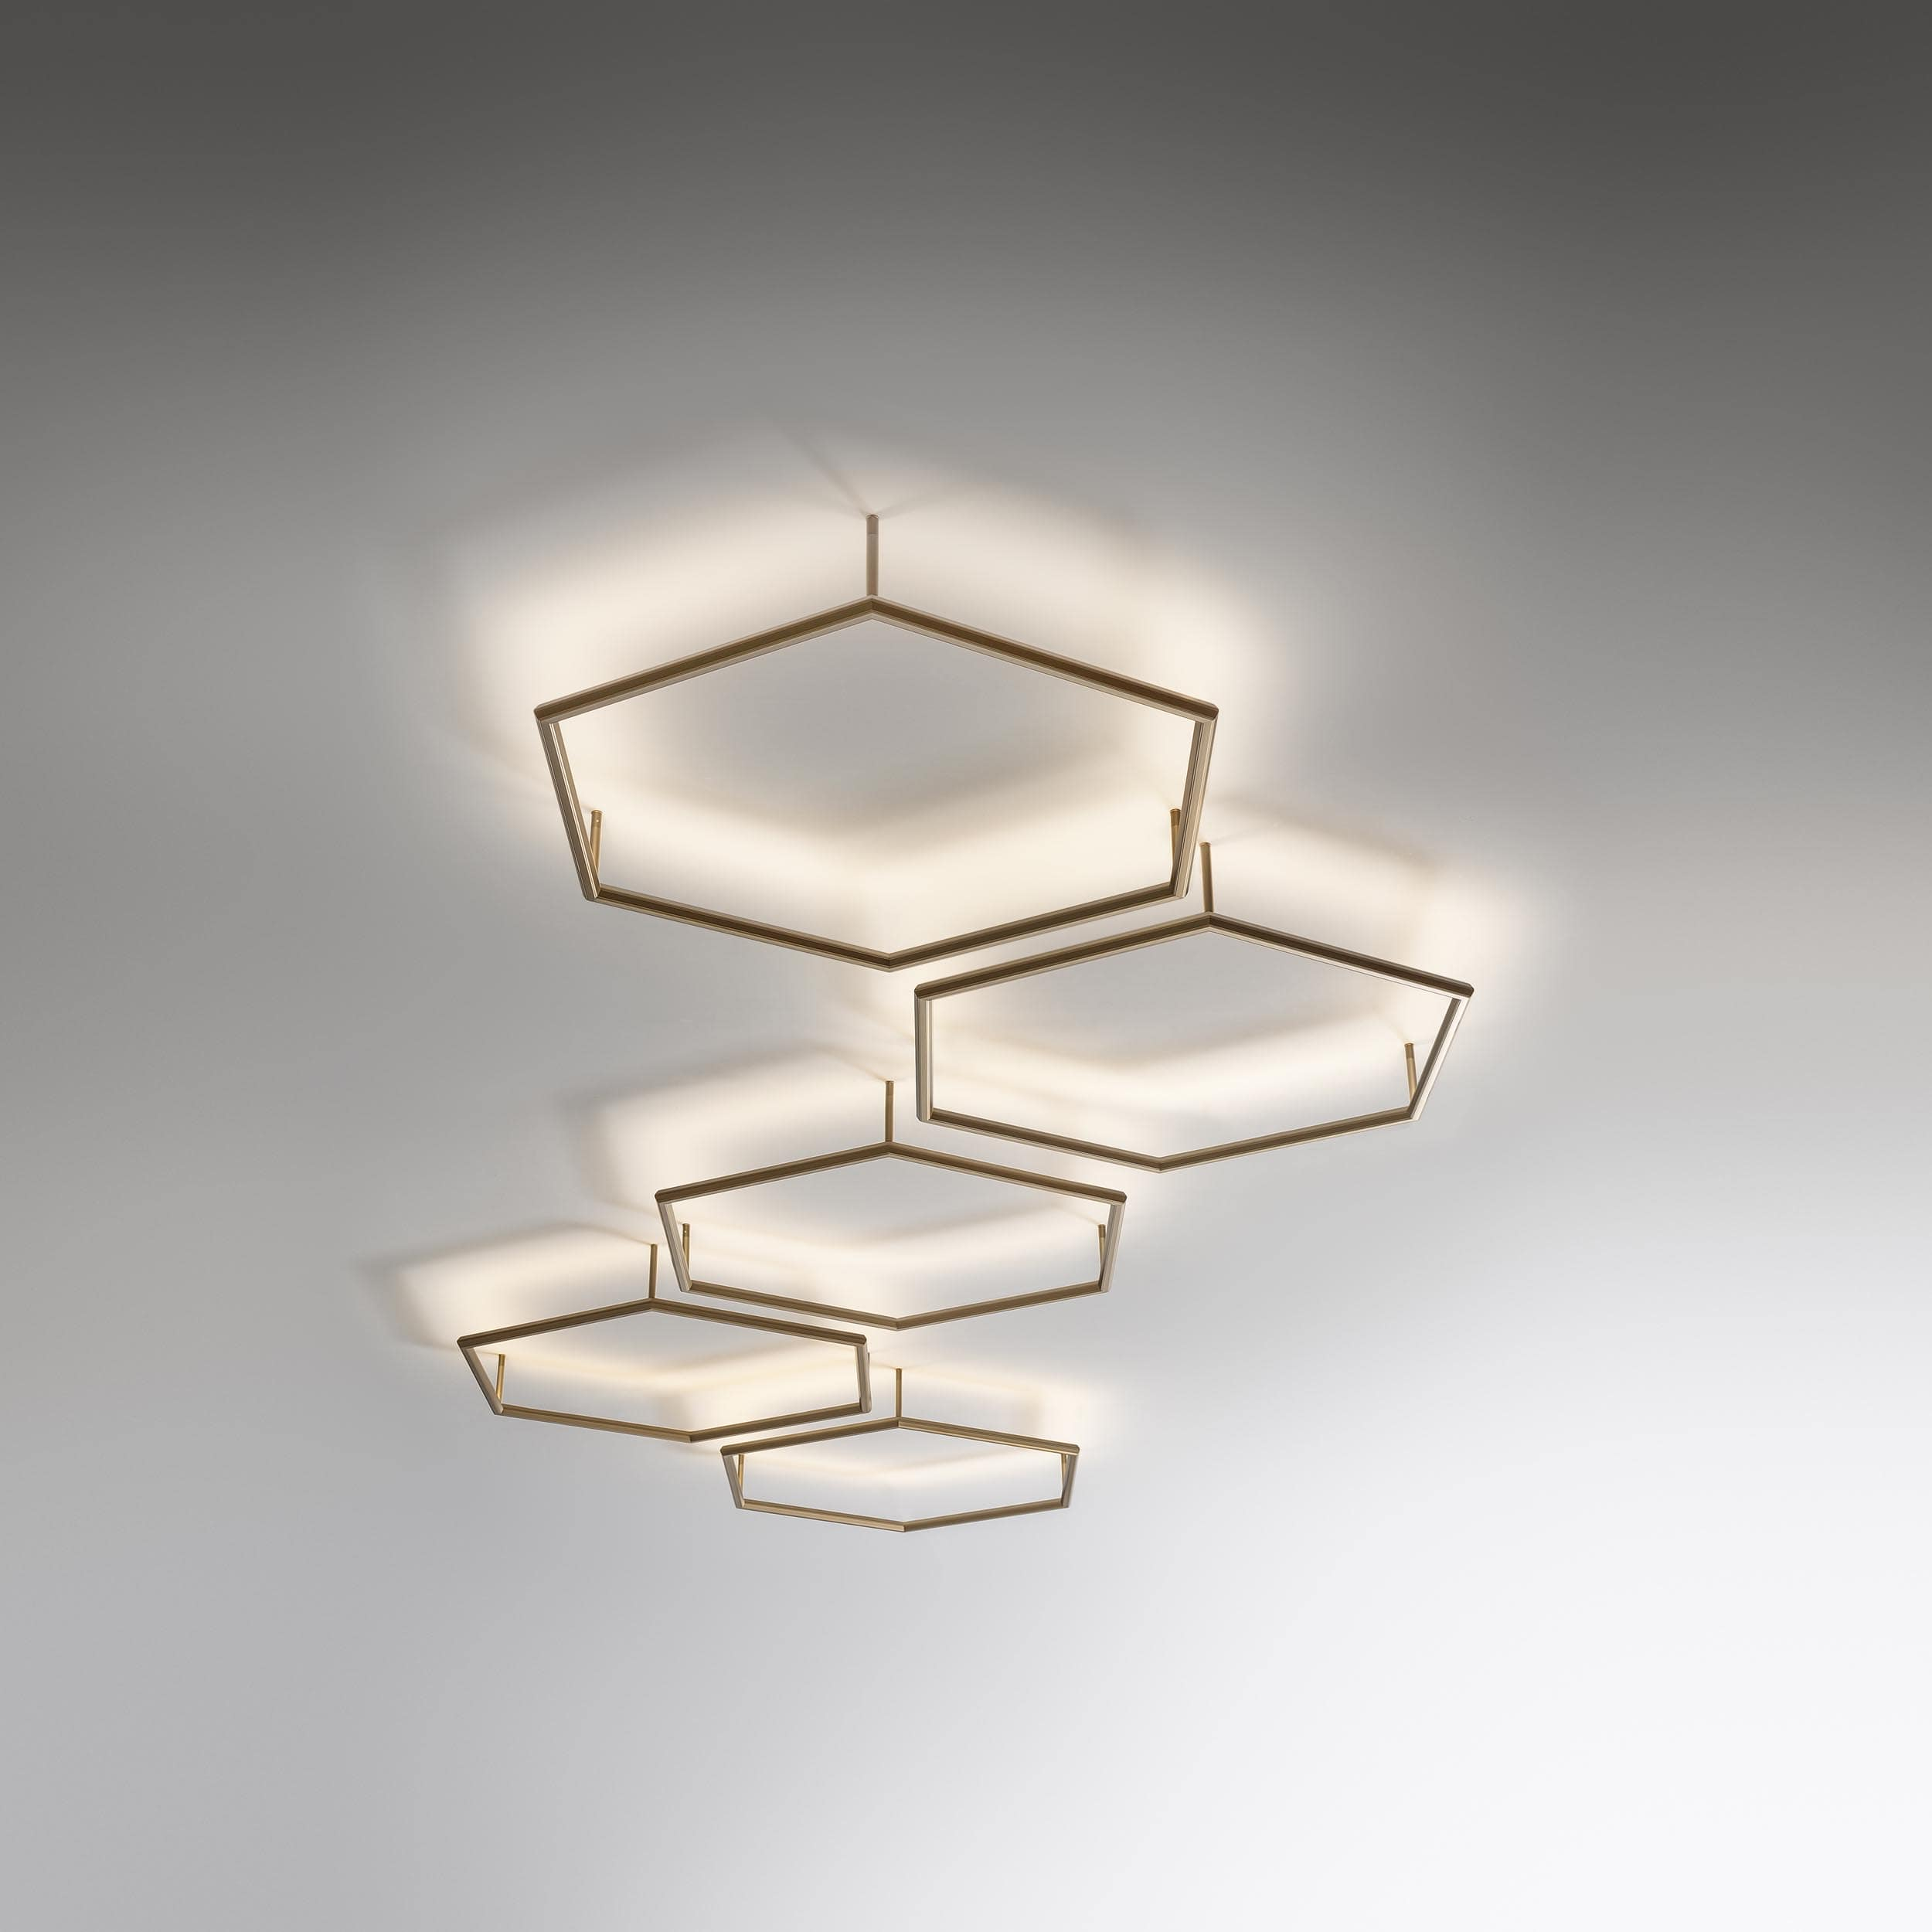 amapda_soffitto_esagono_luminoso_led